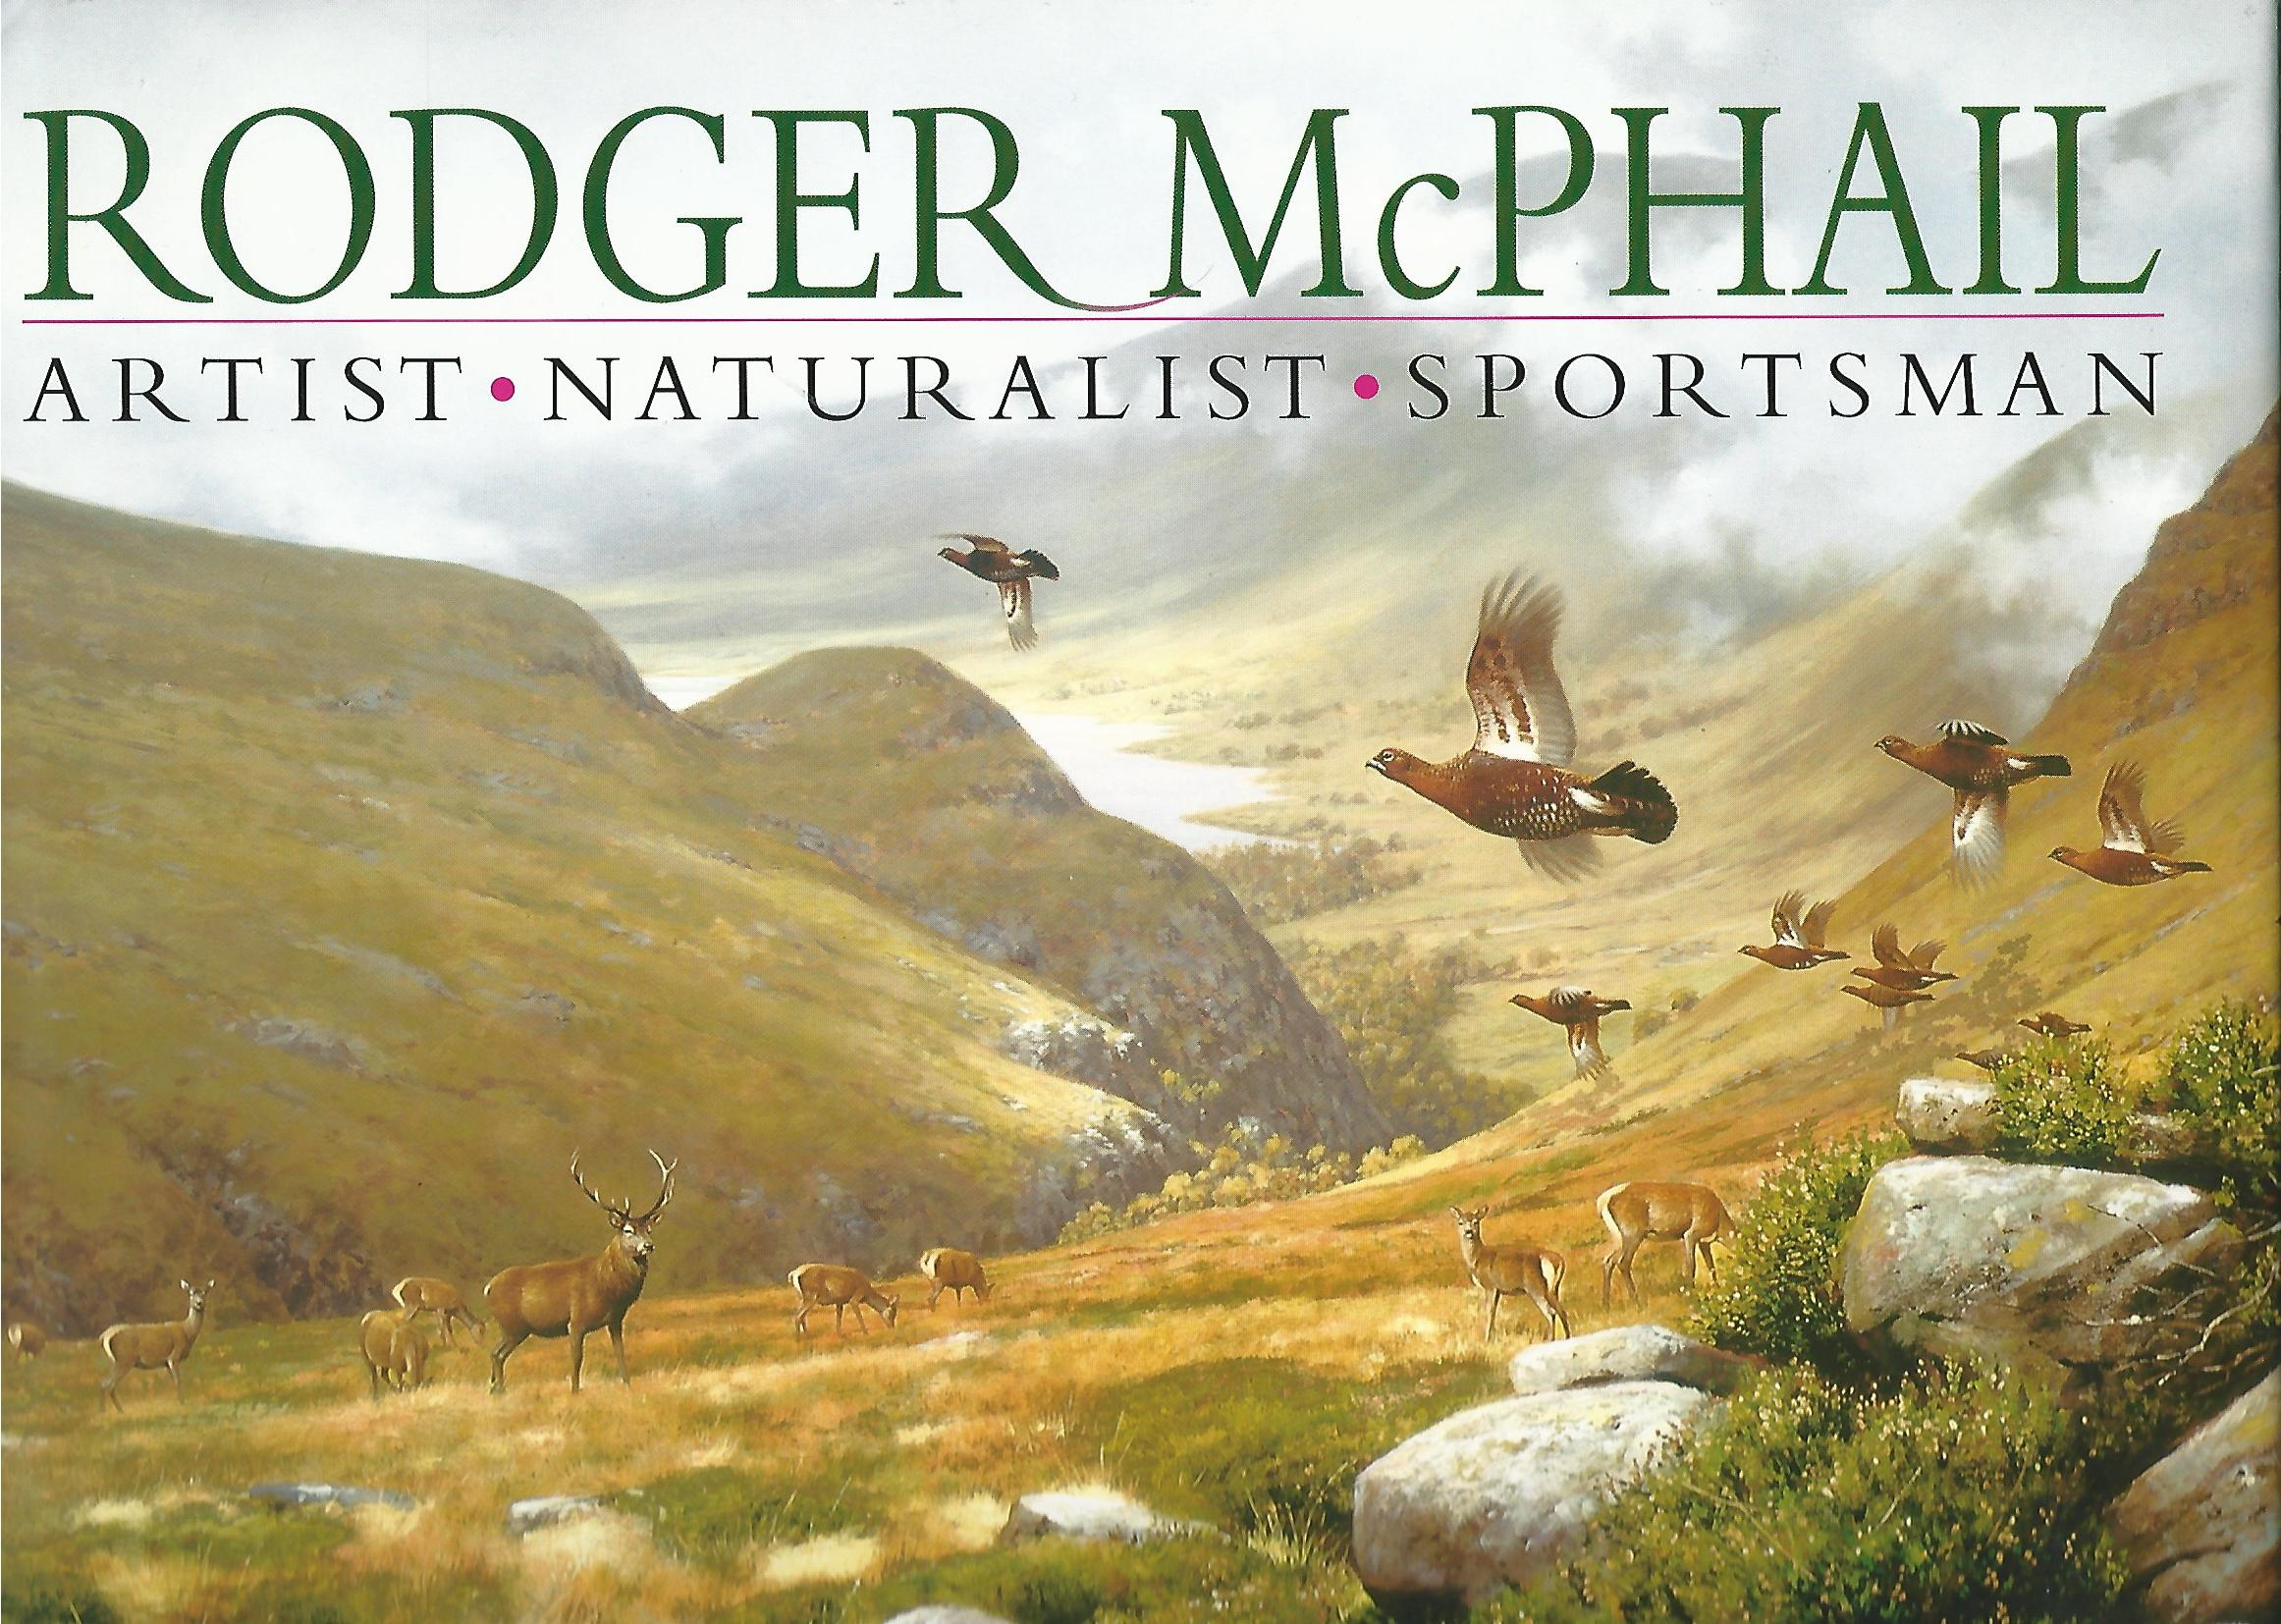 Image for Rodger McPhail: Artist, Naturalist, Sportsman